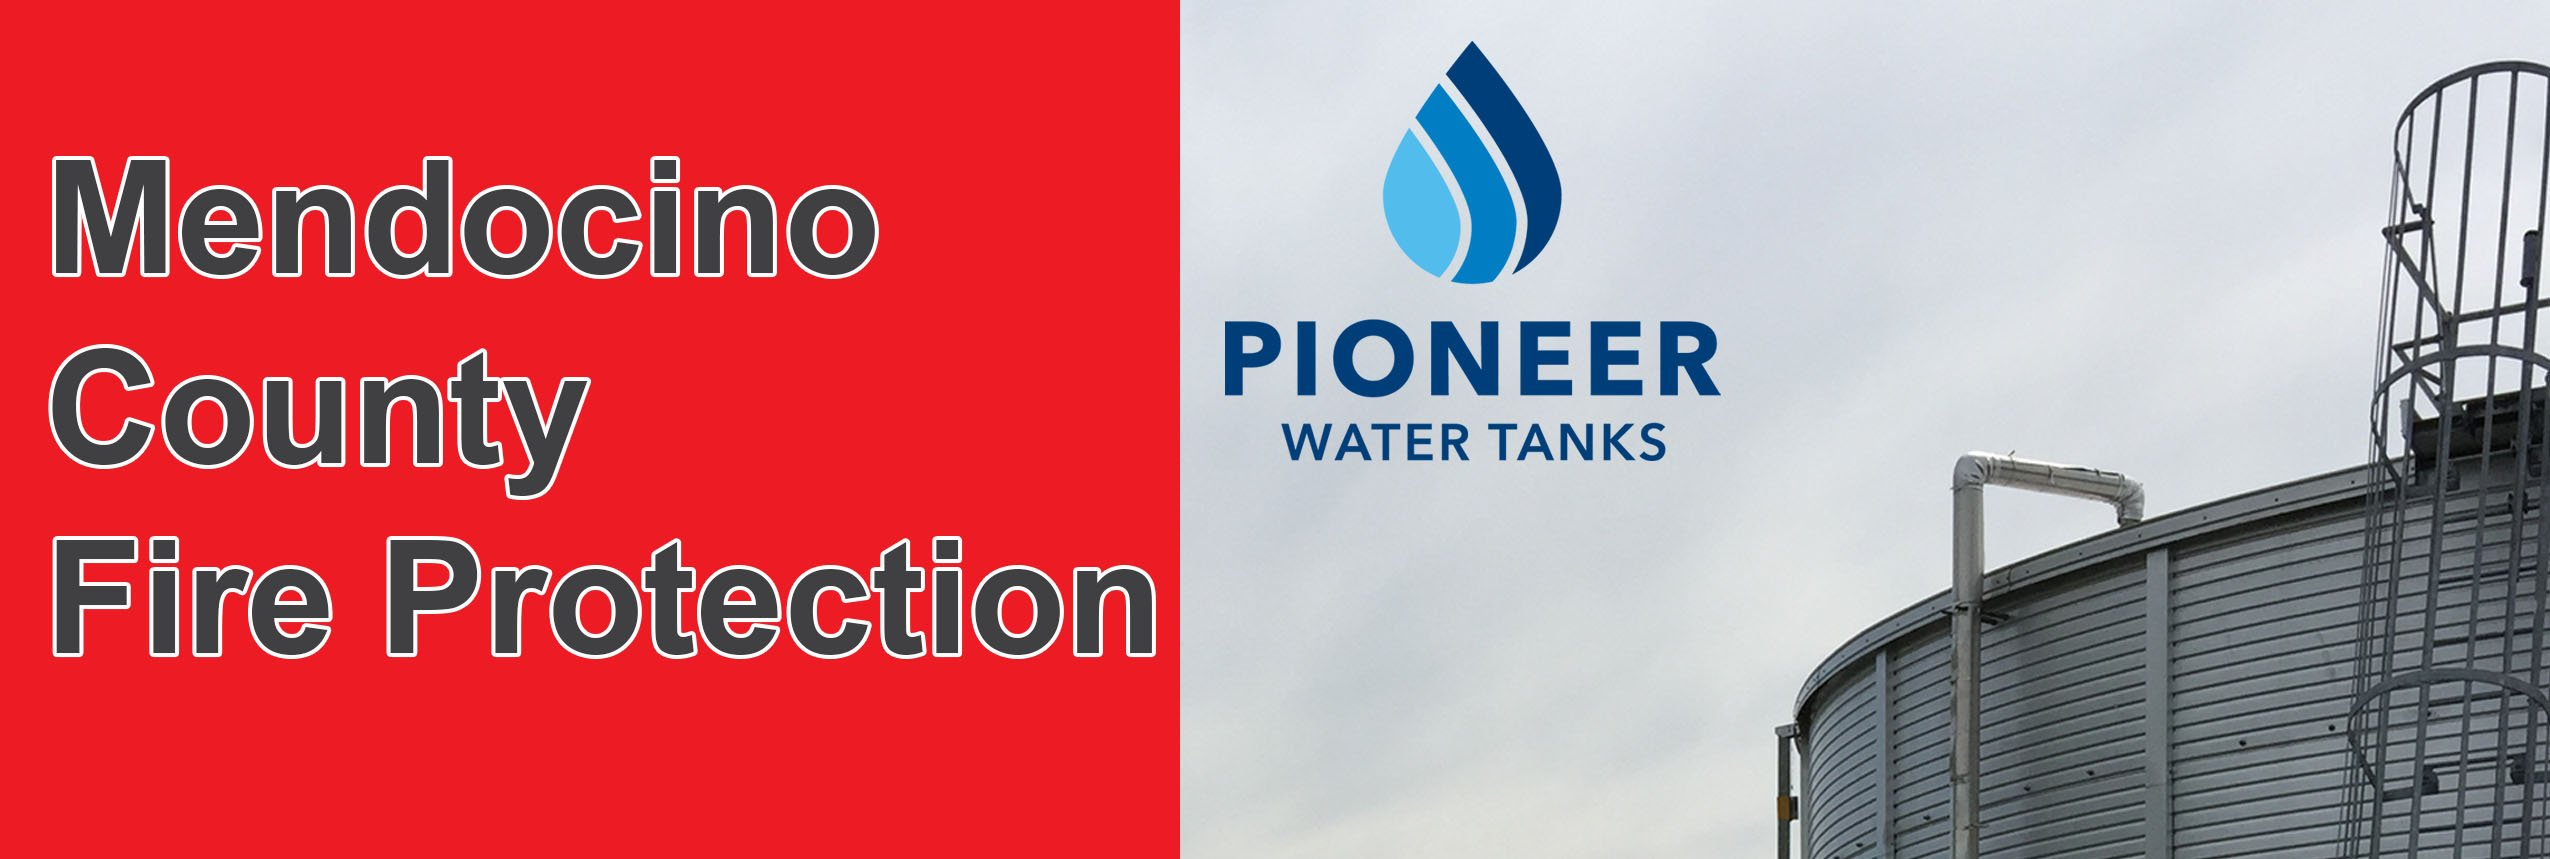 Mendocino County California Pioneer Water Tanks fire protection